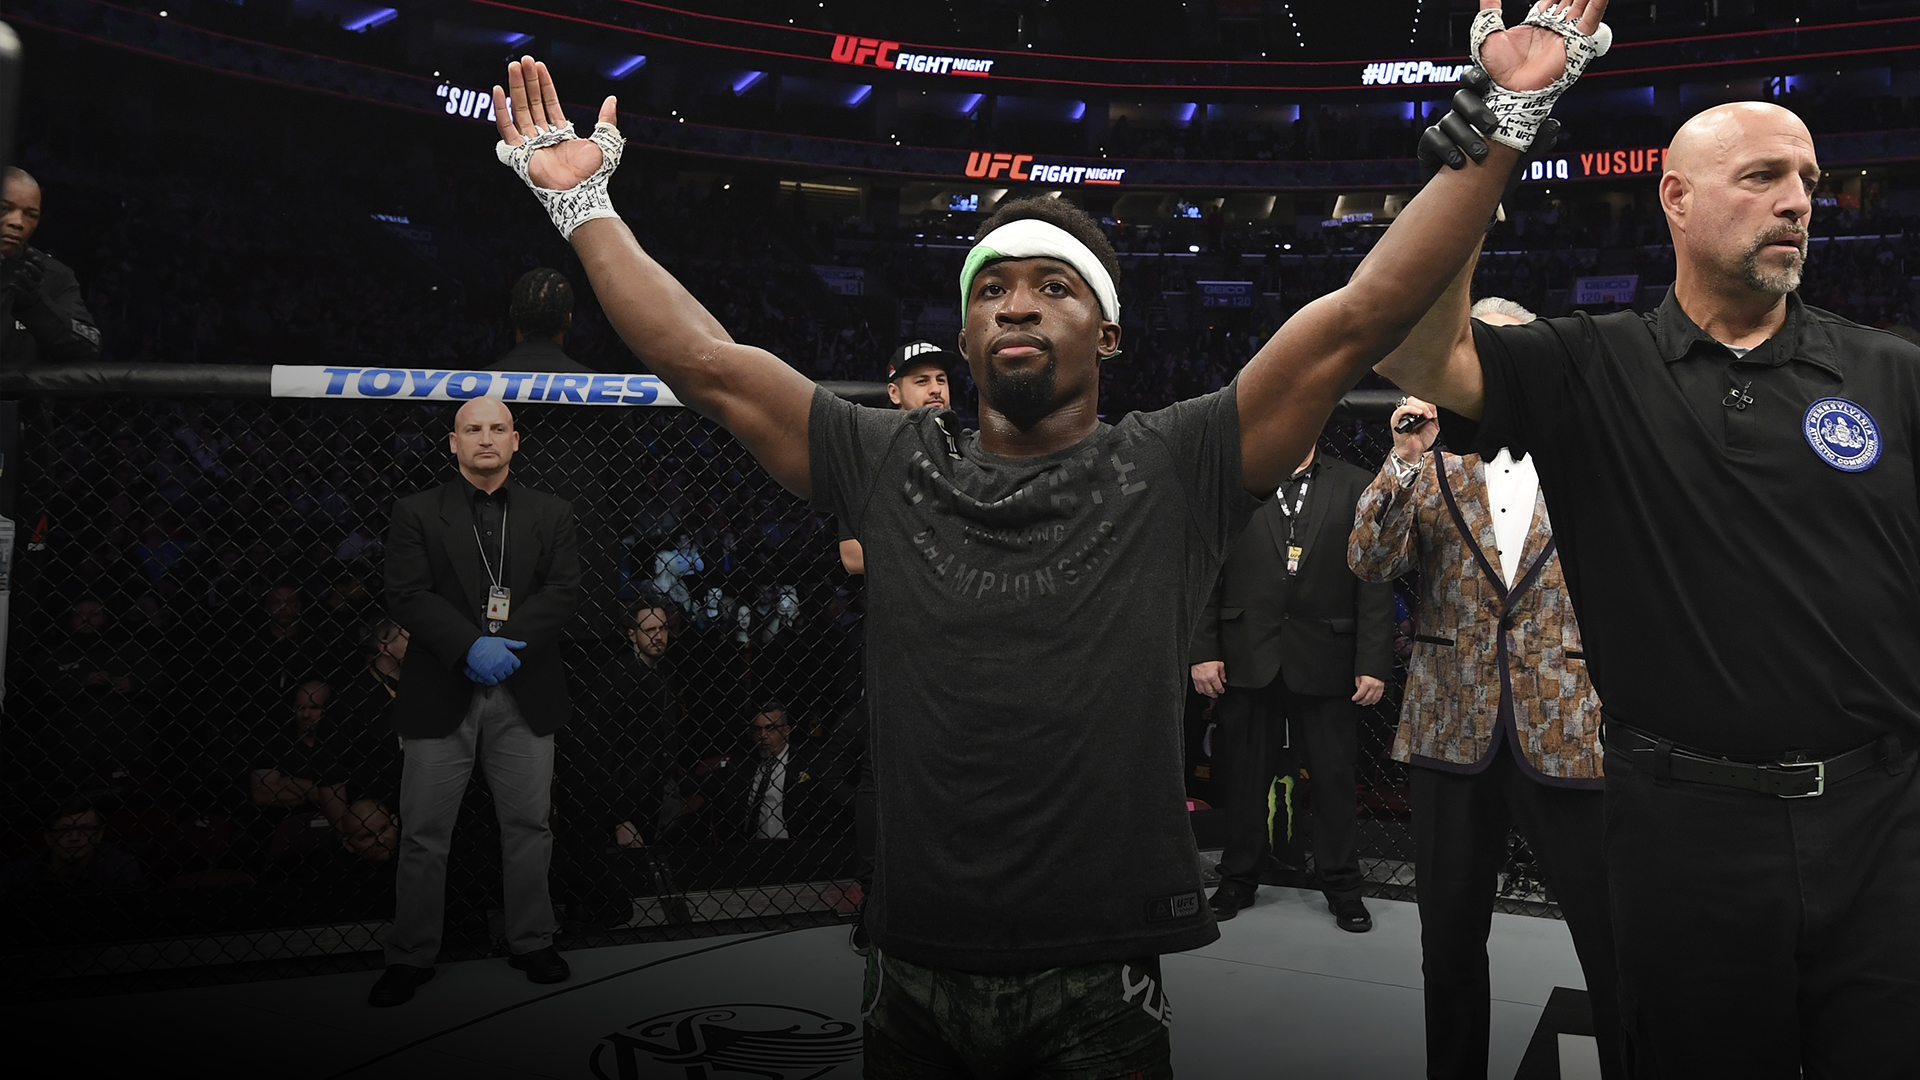 Sodiq Yusuff of Nigeria celebrates after defeating Sheymon Moraes of Brazil by unanimous decision in their featherweight bout during the UFC Fight Night event at Wells Fargo Center on March 30, 2019 in Philadelphia, Pennsylvania. (Photo by Josh Hedges/Zuffa LLC)